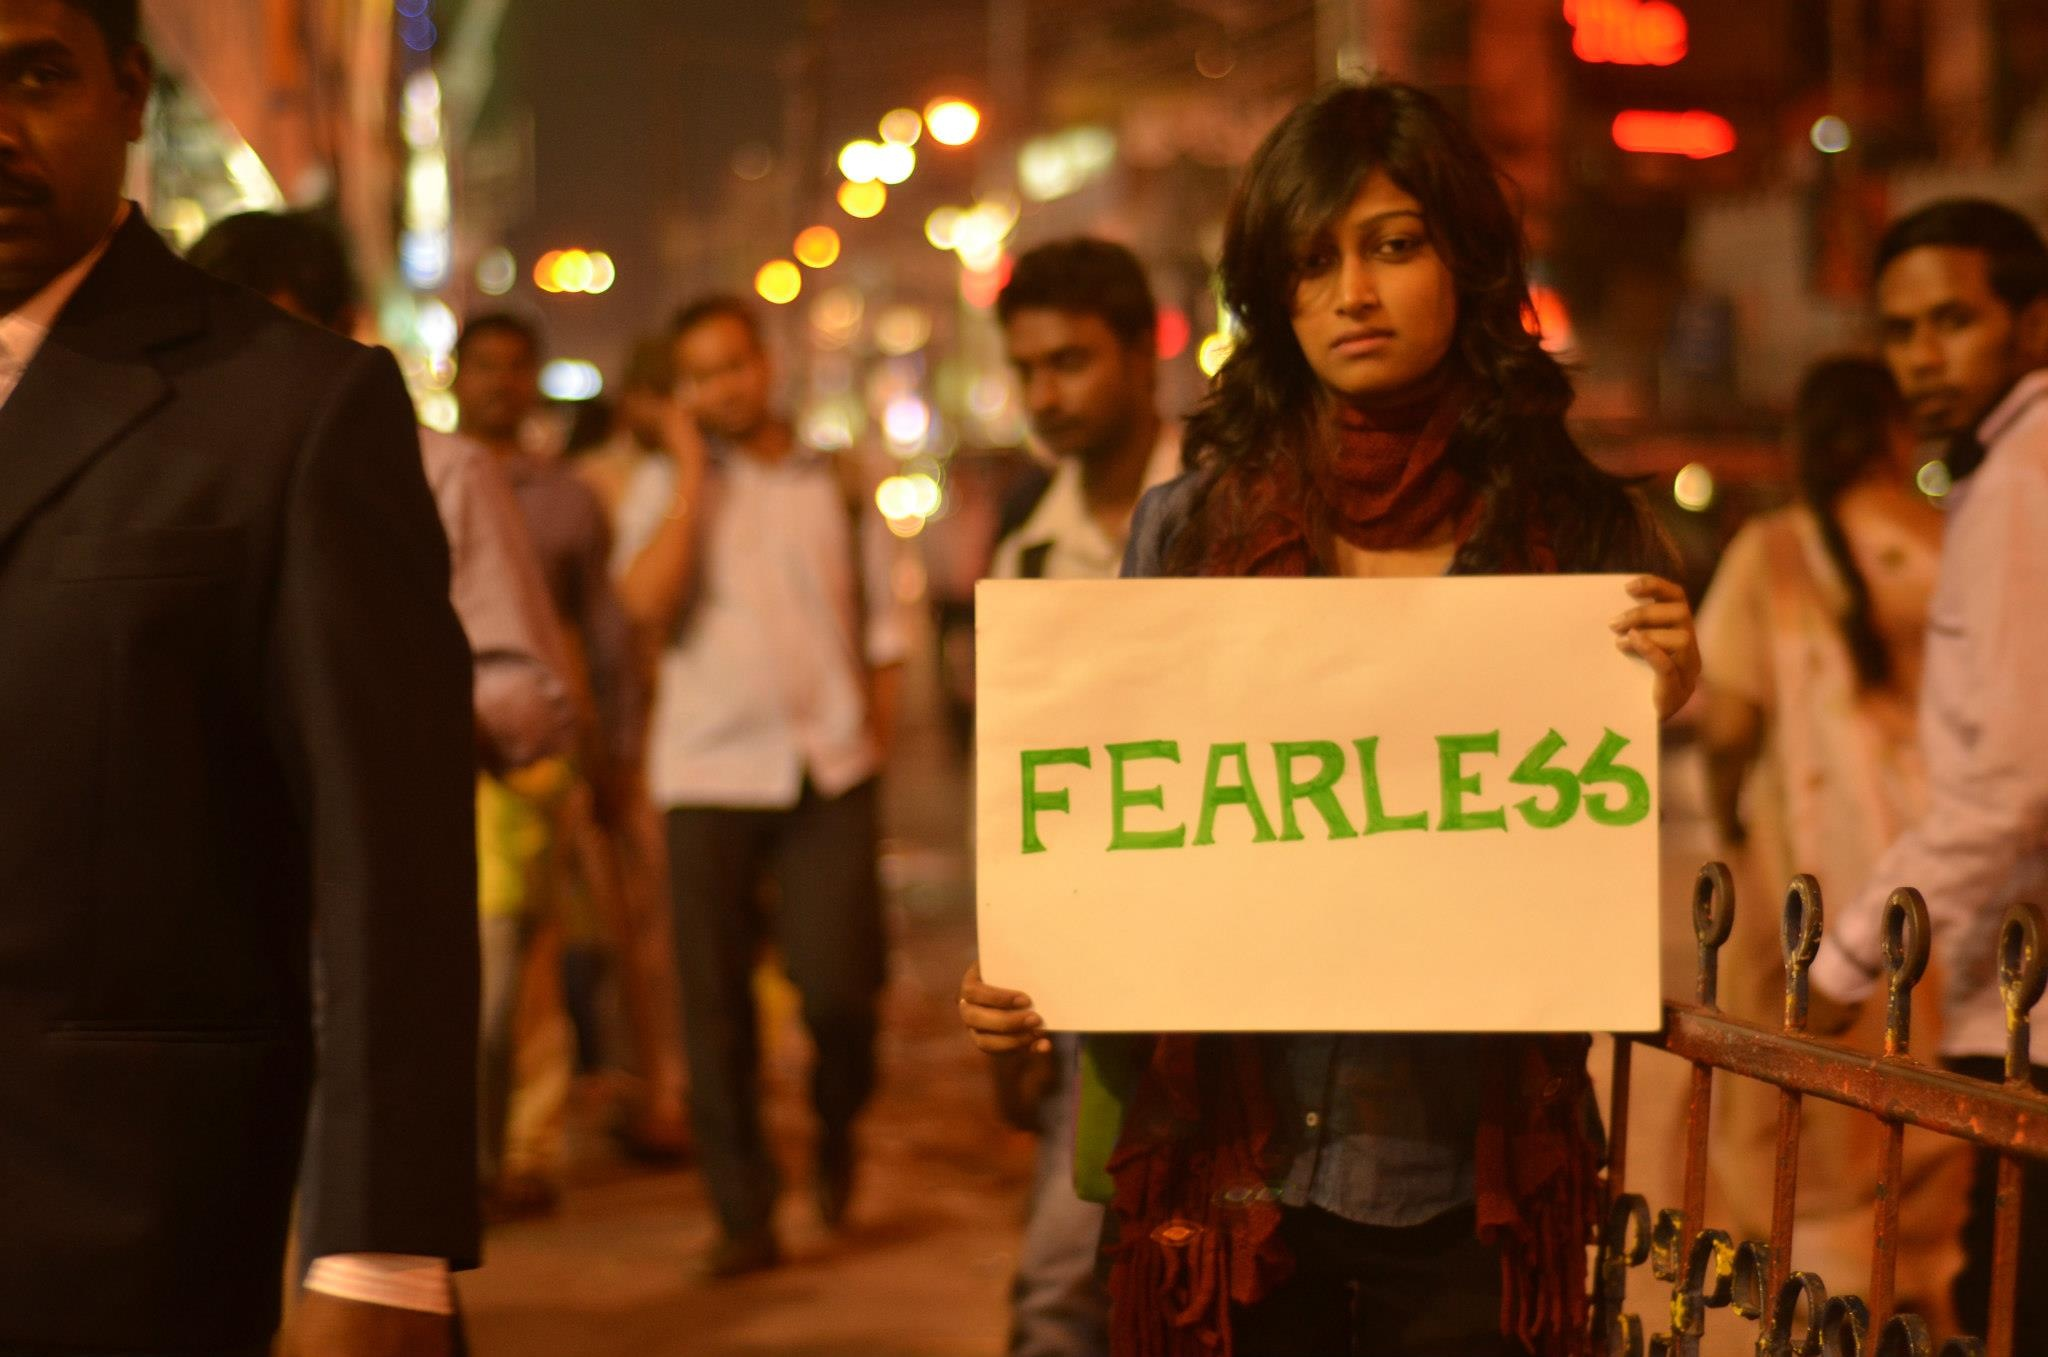 crime in india In india, rape is illegal and the definition of what constitutes rape was widened only recently in response to a horrific fatal assault in new delhi in 2012 forced penetration by any object in any orifice is now a crime despite this law, some men in india can have sex with a woman against her will.